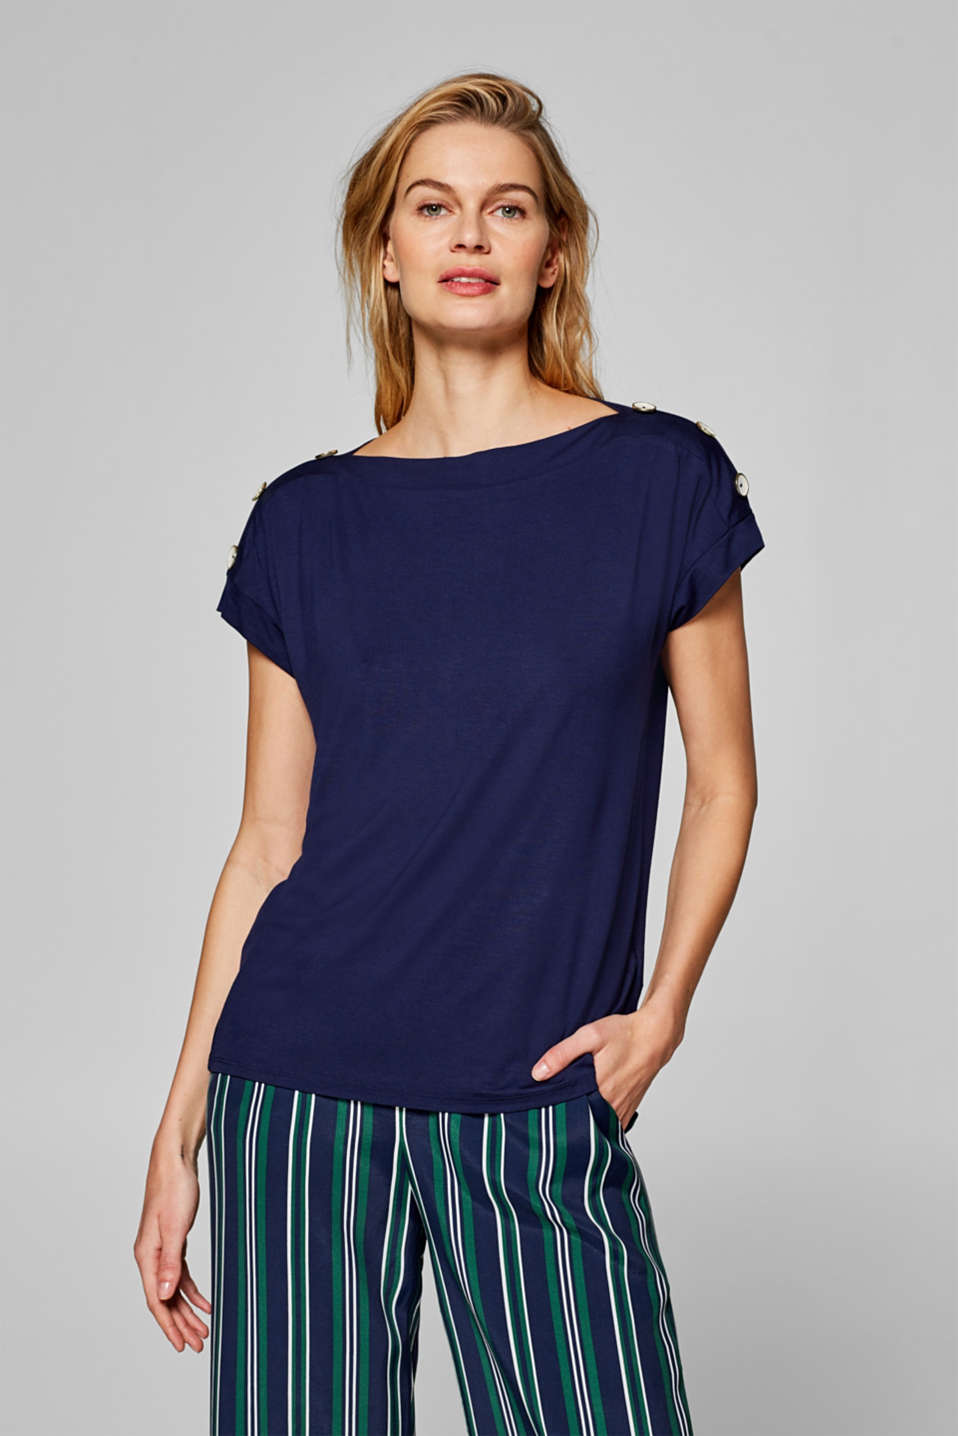 Esprit - Bateau neckline T-shirt with decorative buttons